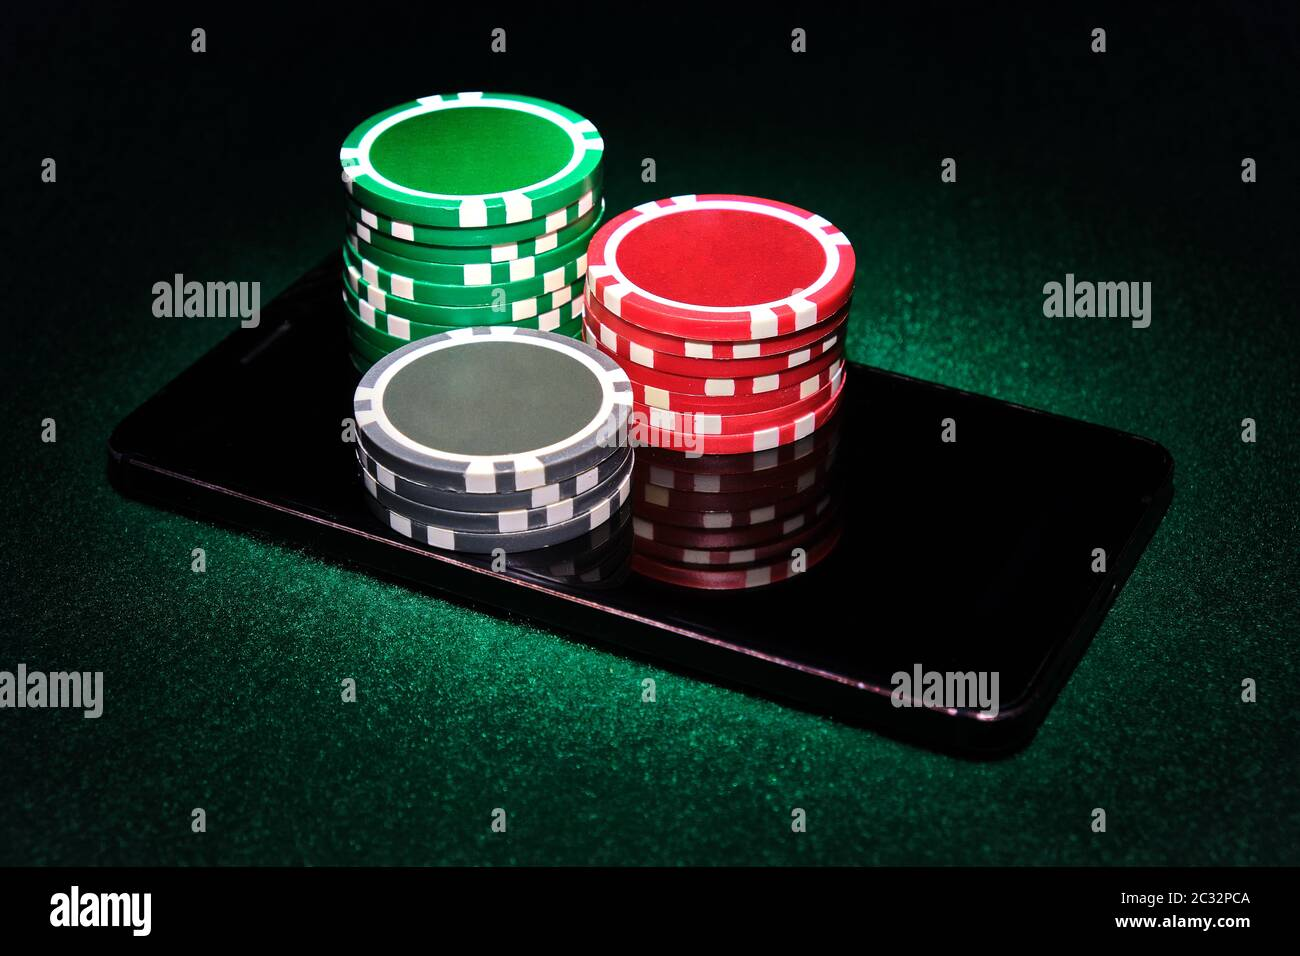 Holdem Poker Mobile Game App High Resolution Stock Photography And Images Alamy